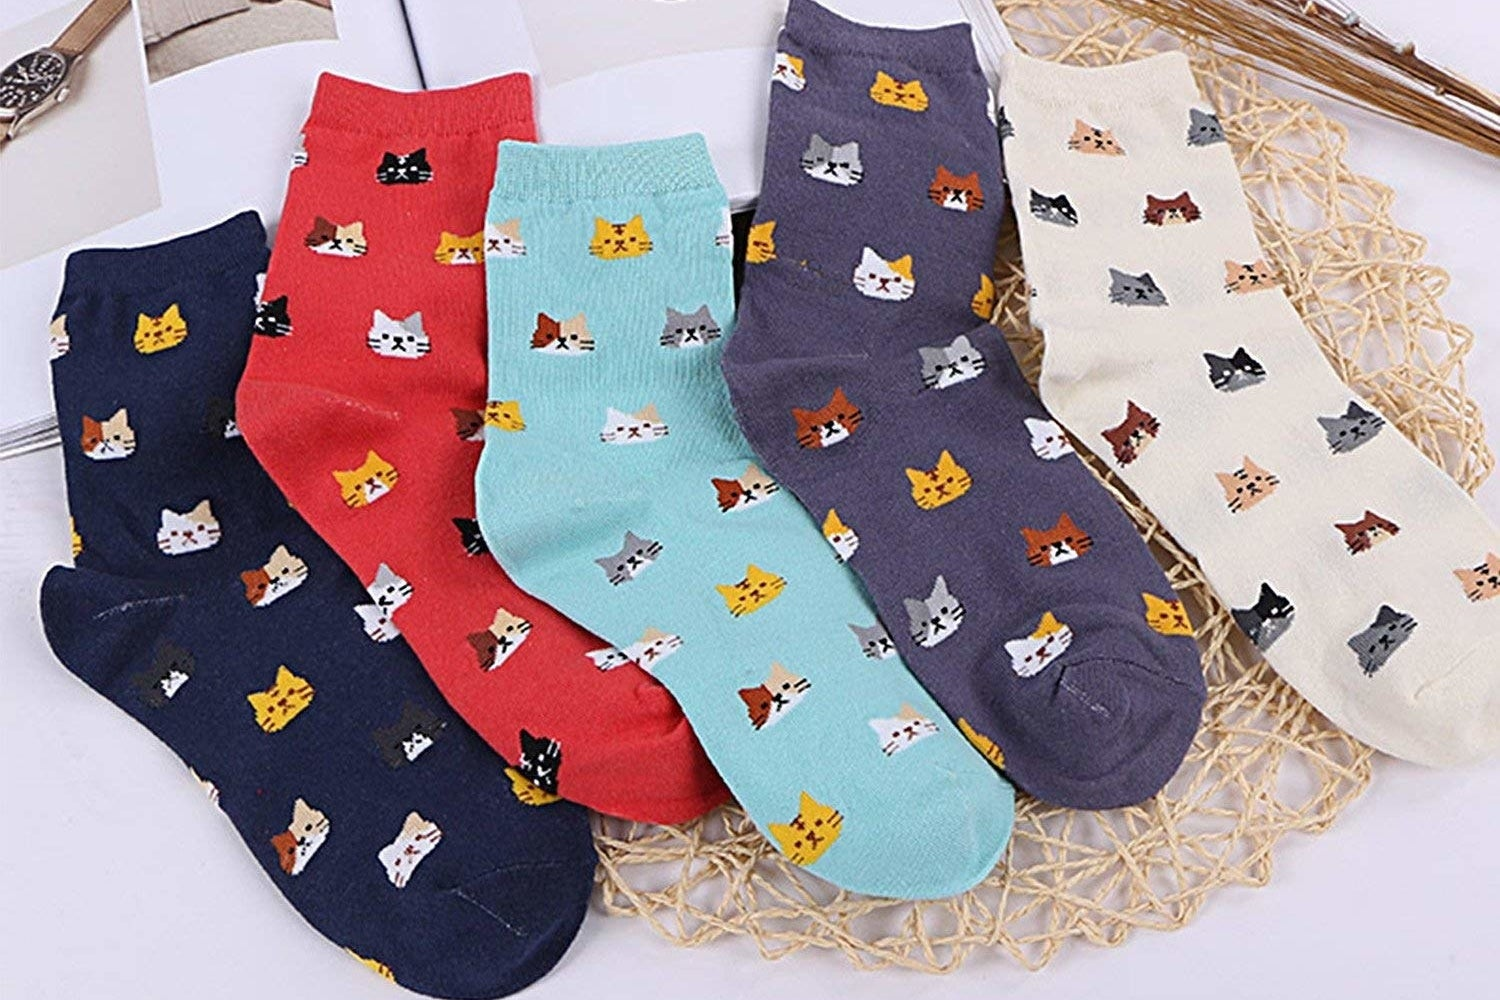 21 Pairs Of Socks That Are So Cute Youll Want To Wear Them With Sandals